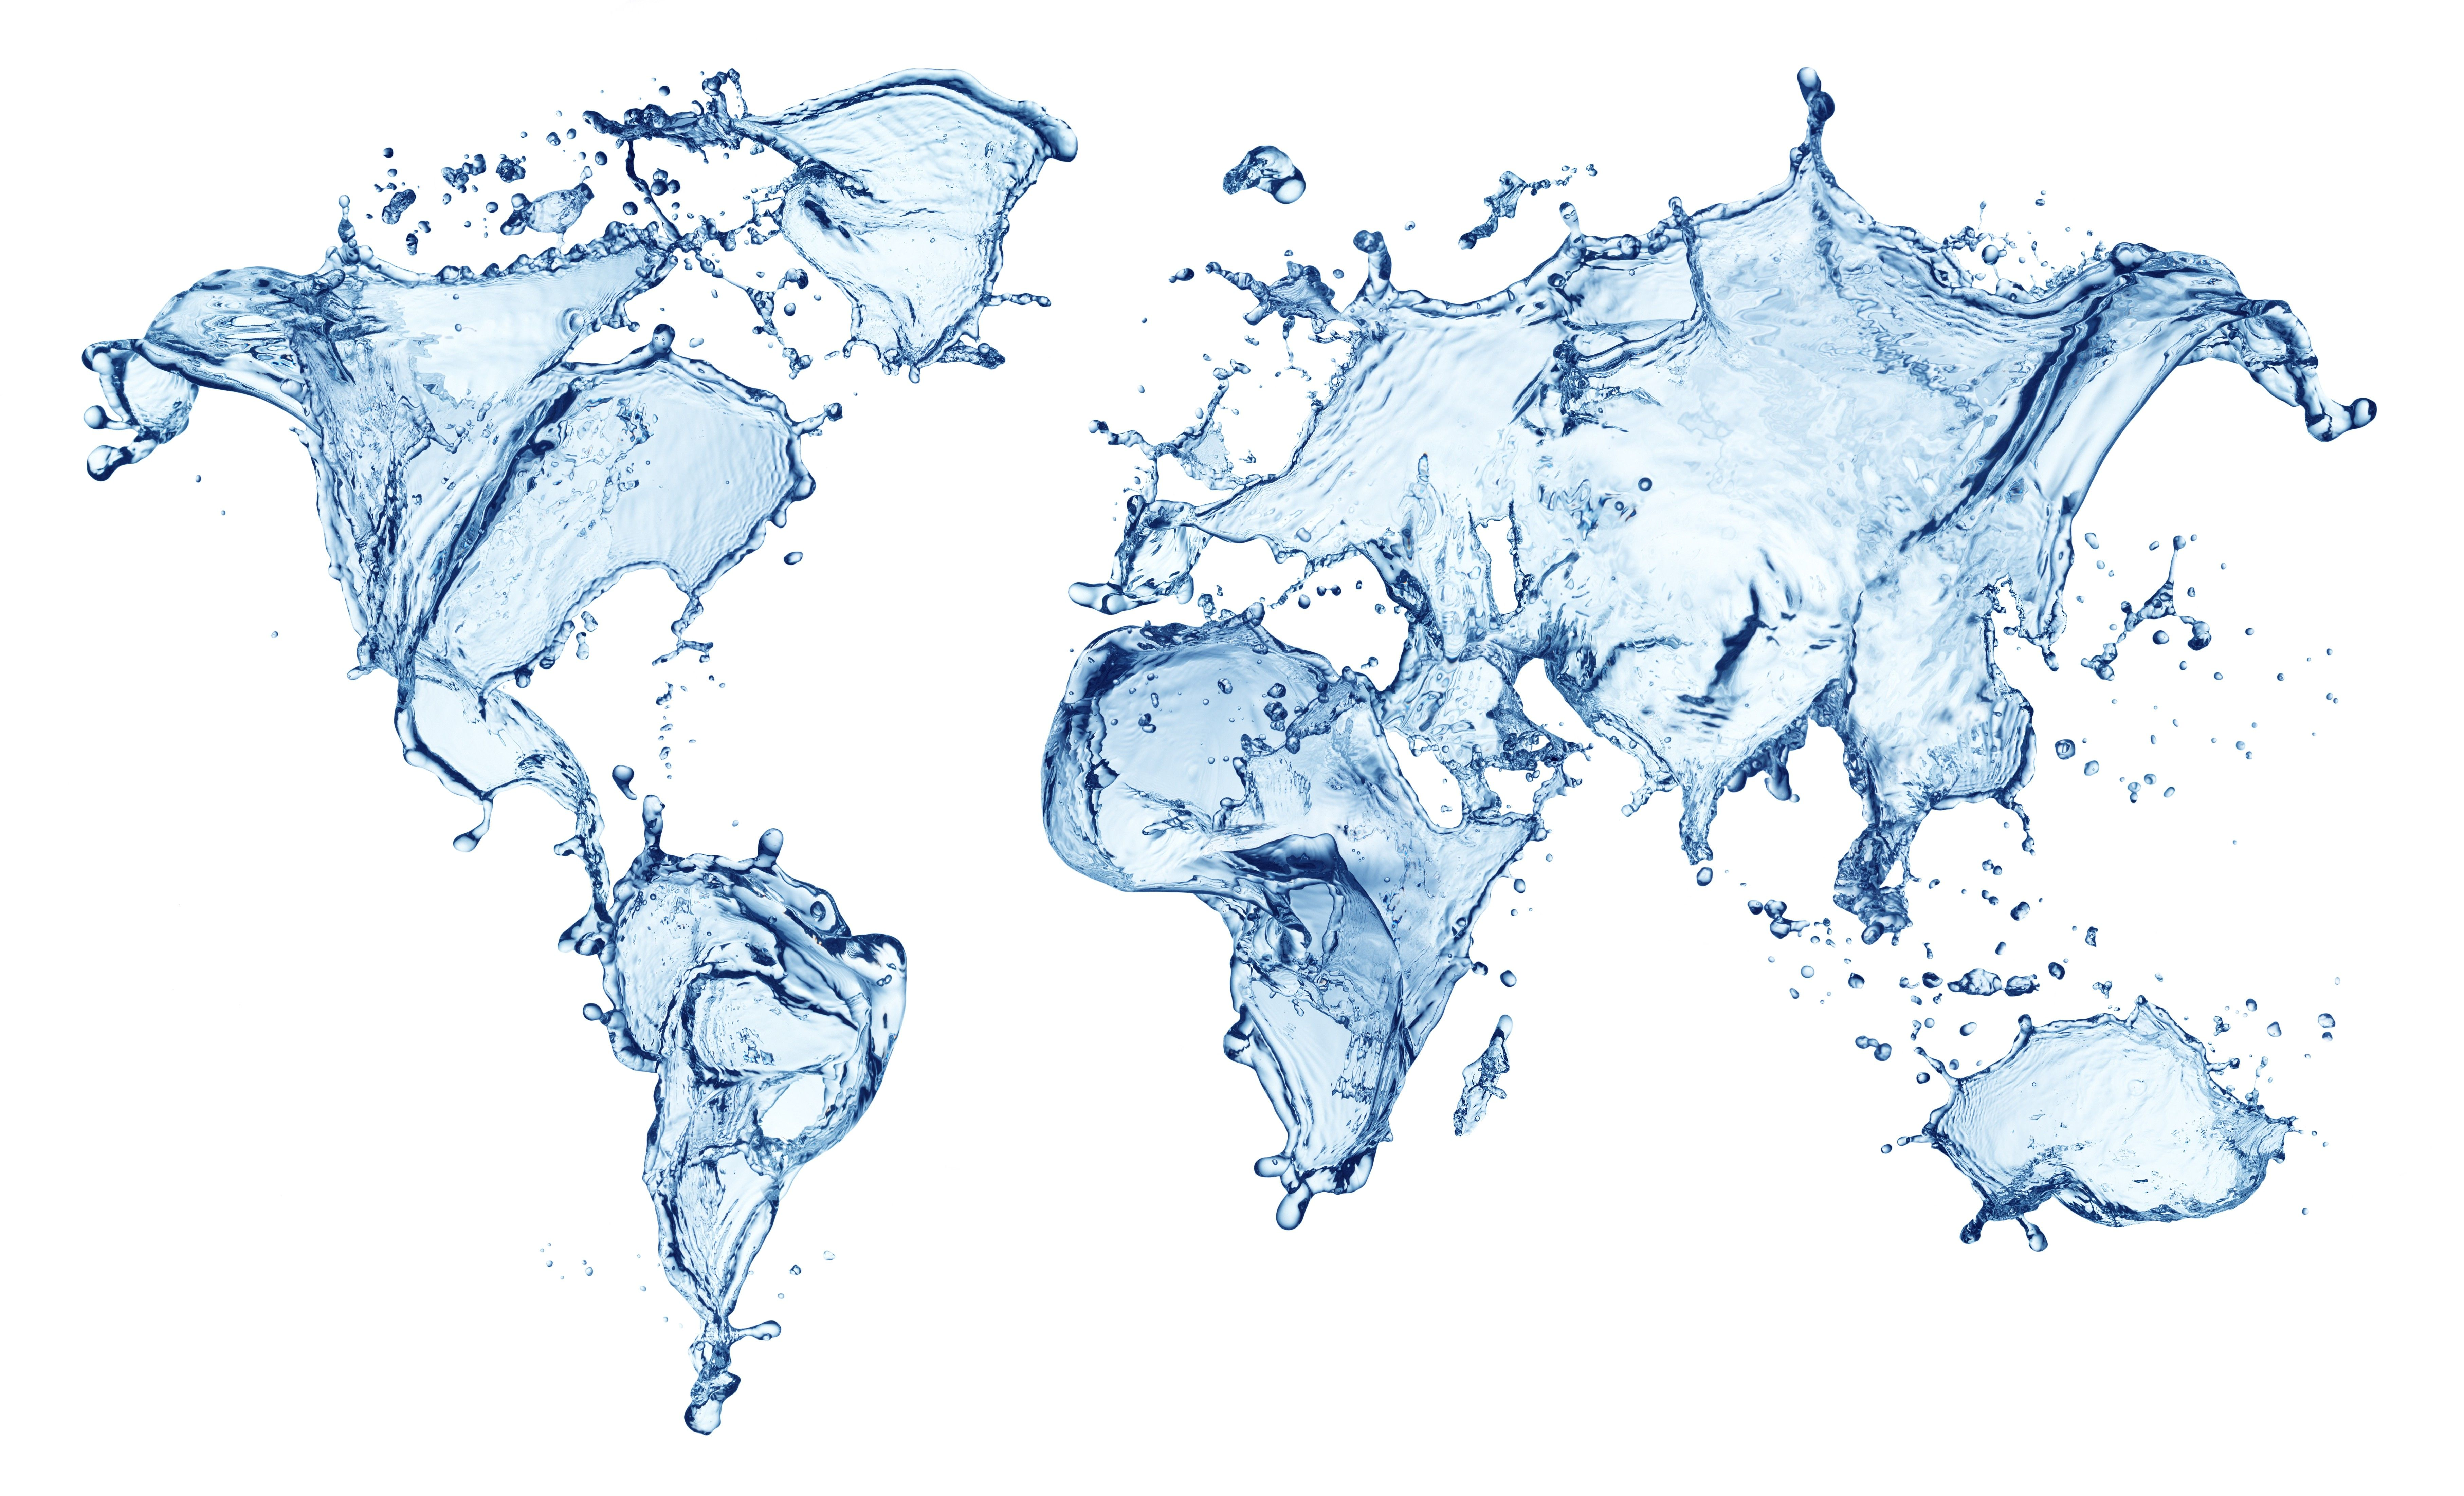 World water day map hd desktopg 72574407 world map wallpaper world map water abstract maps px wallpapers resolution filesize kb added on january tagged world map gumiabroncs Gallery